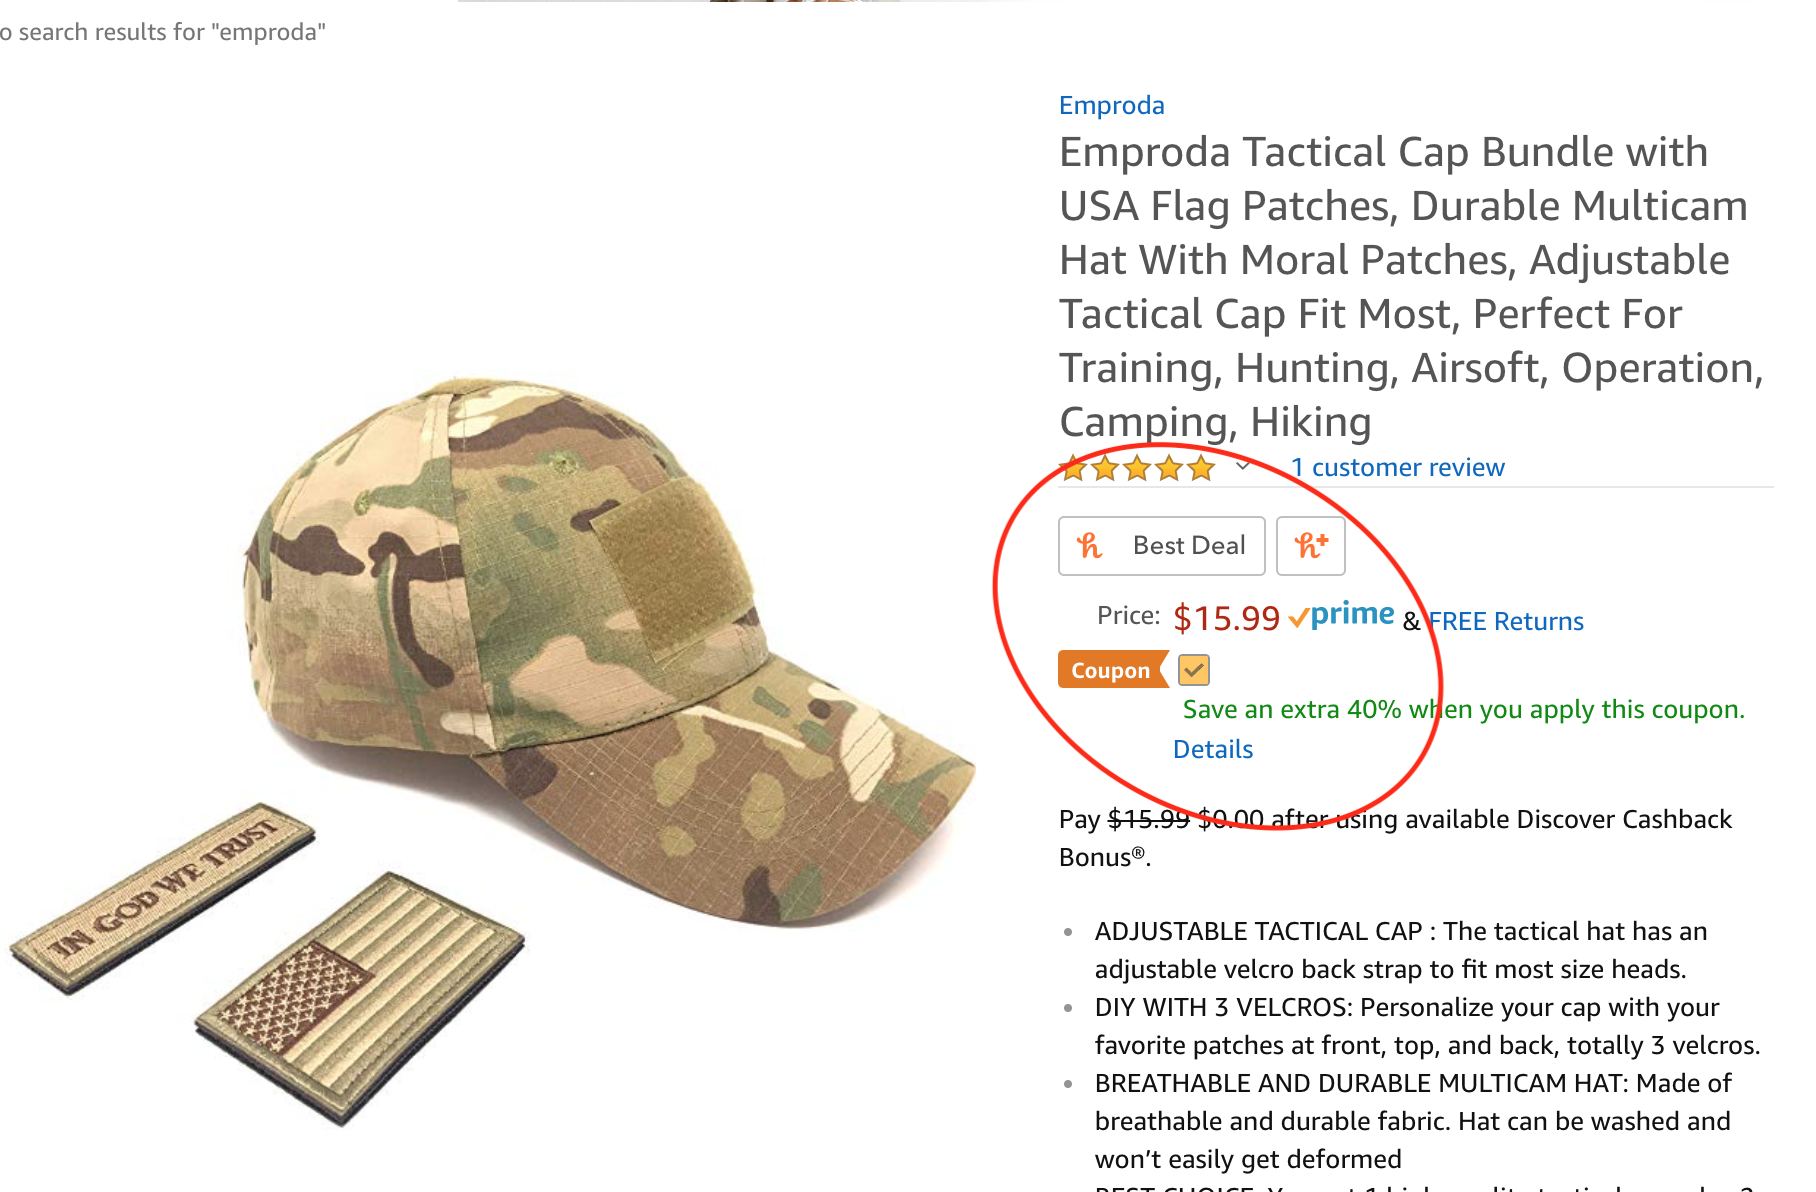 Durable Multicam Mesh Tactical Cap Bundle with USA Flag Patches -  10.19  shipped after added coupon  fde4dbdfd583